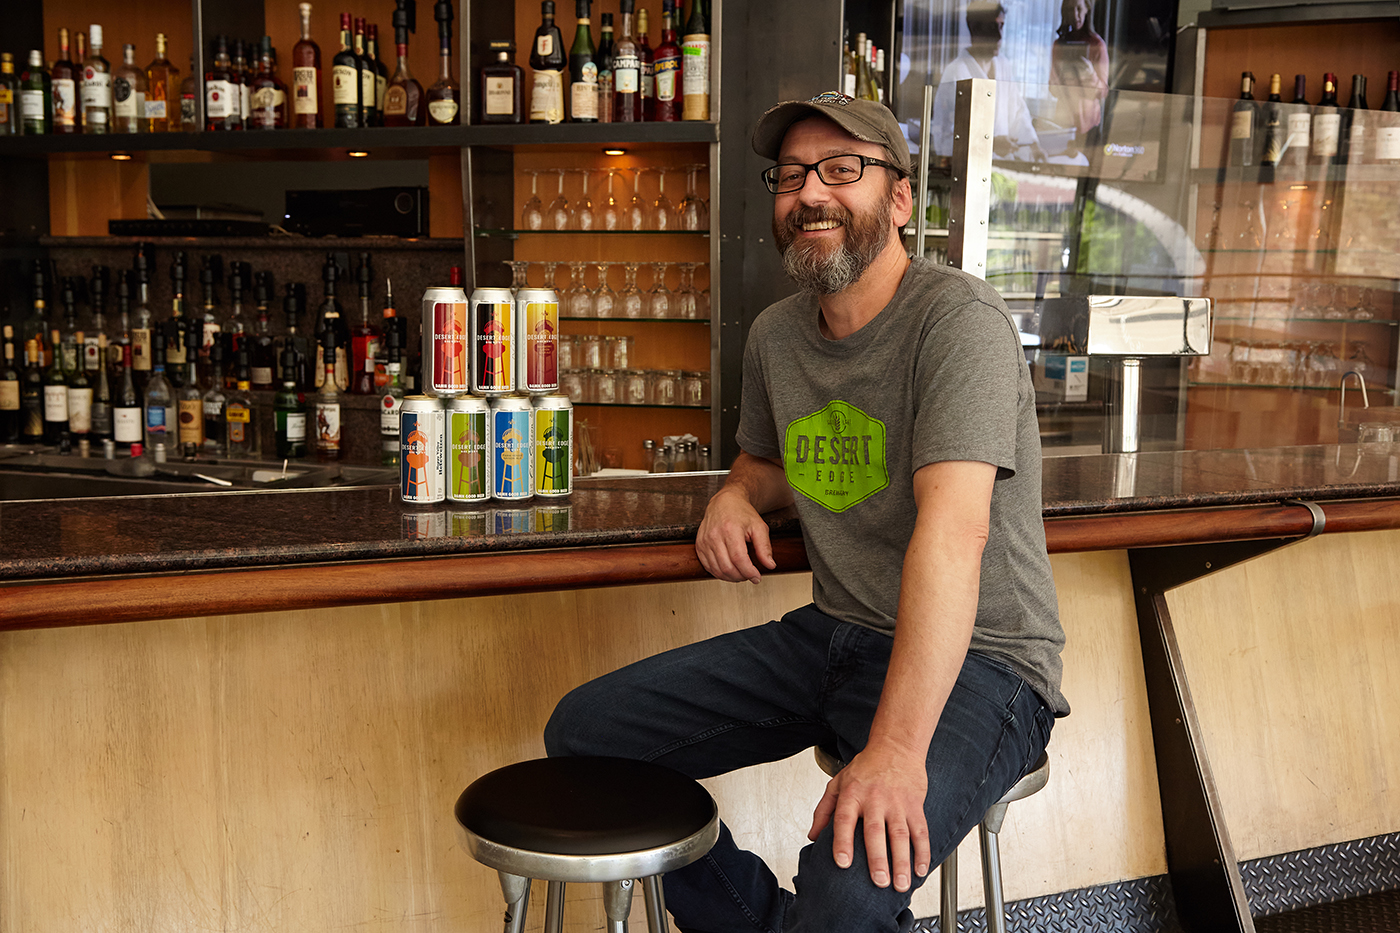 Desert Edge Head Brewer Chad Krusell embraces the recent, small but mighty hand-canning operation at the brewery that now sees Desert Edge brews to go.